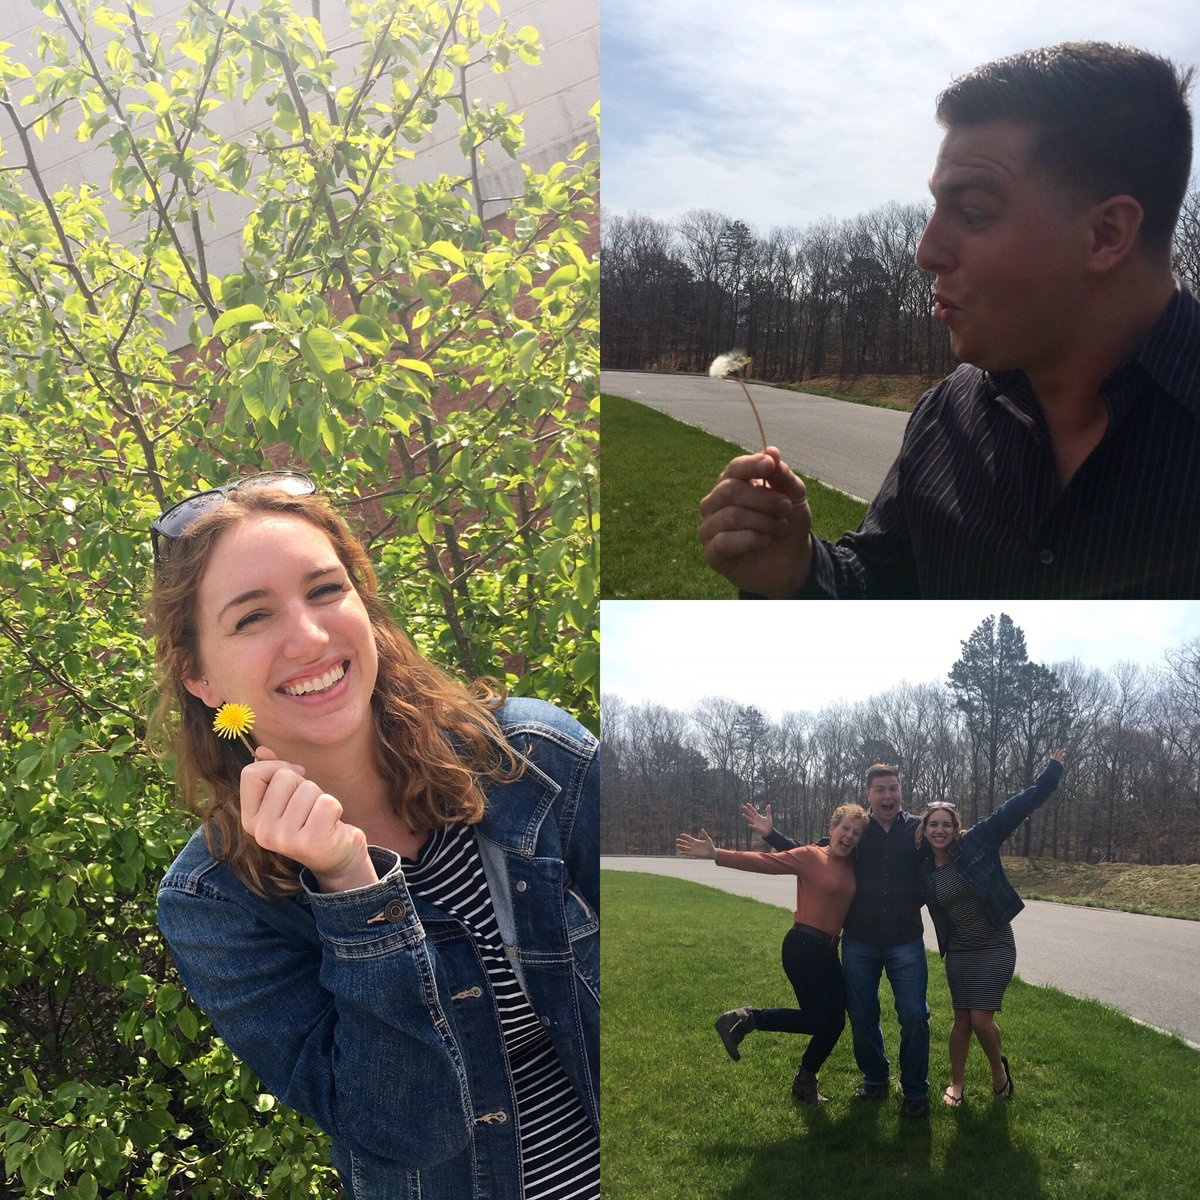 The Buncee team is celebrating #EarthDay by enjoying the beautiful spring weather! #BunceeED16 https://t.co/Sk16dkiqhh